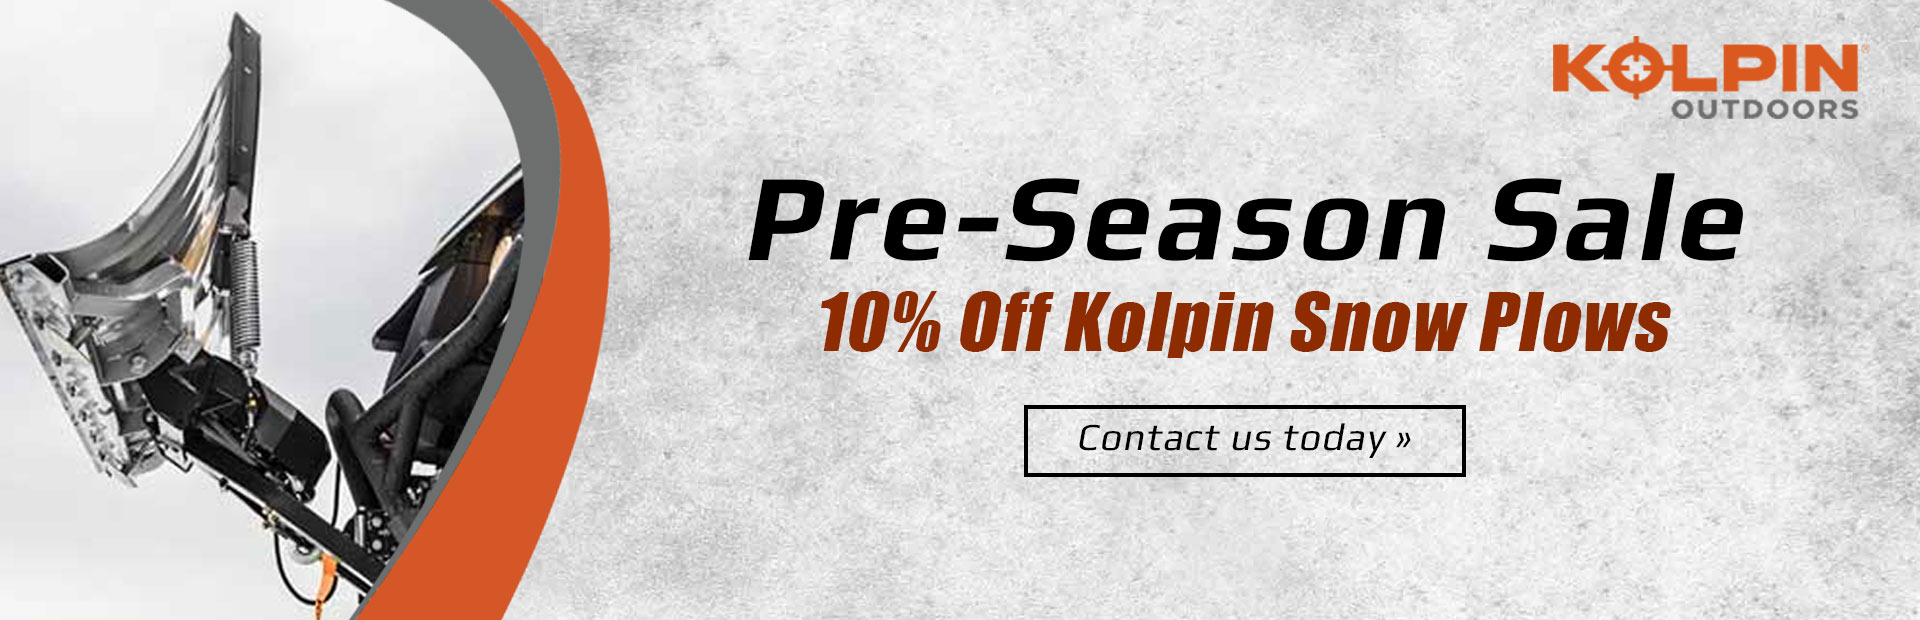 Pre-Season Sale: Get 10% off Kolpin snow plows! Contact us today for details.